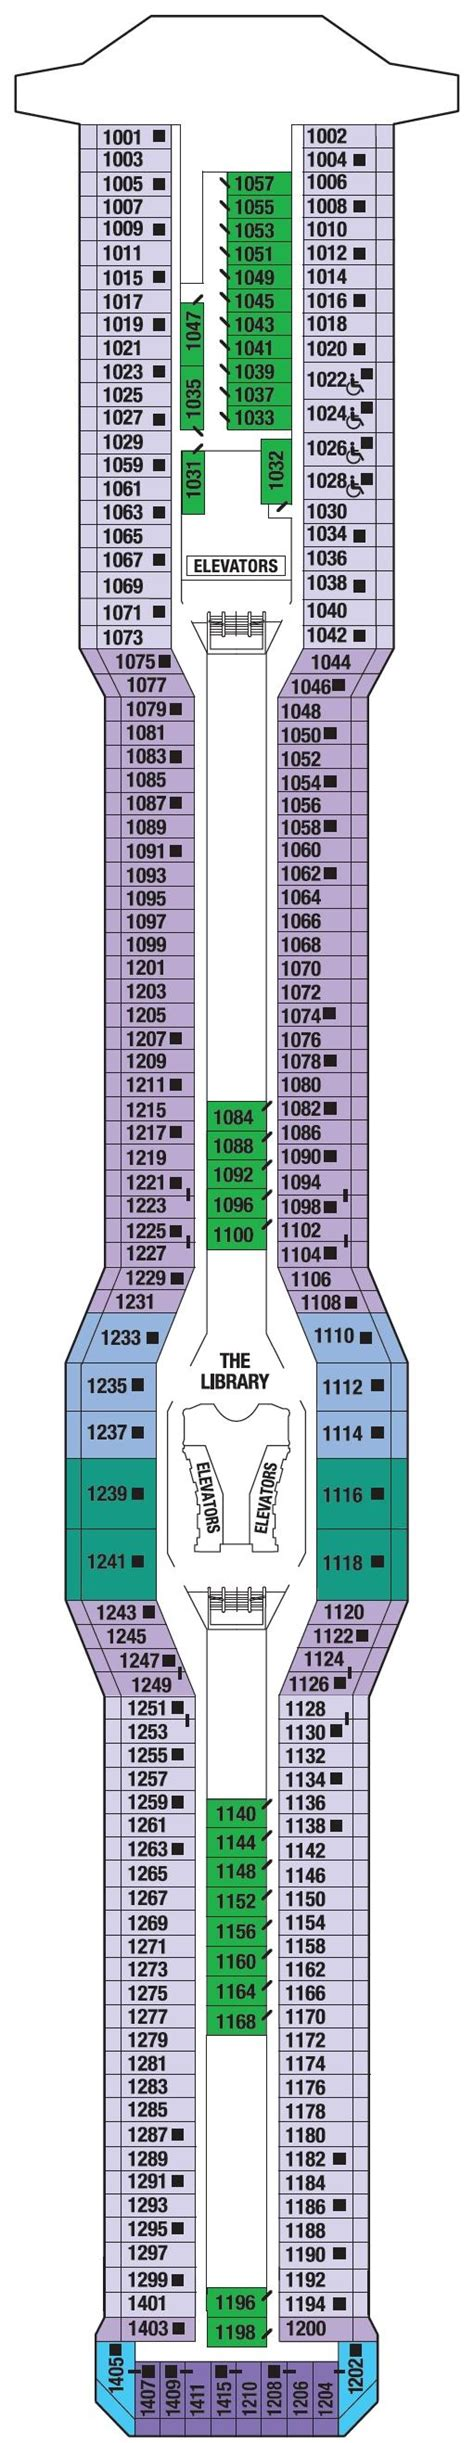 Galerry printable deck plans celebrity eclipse